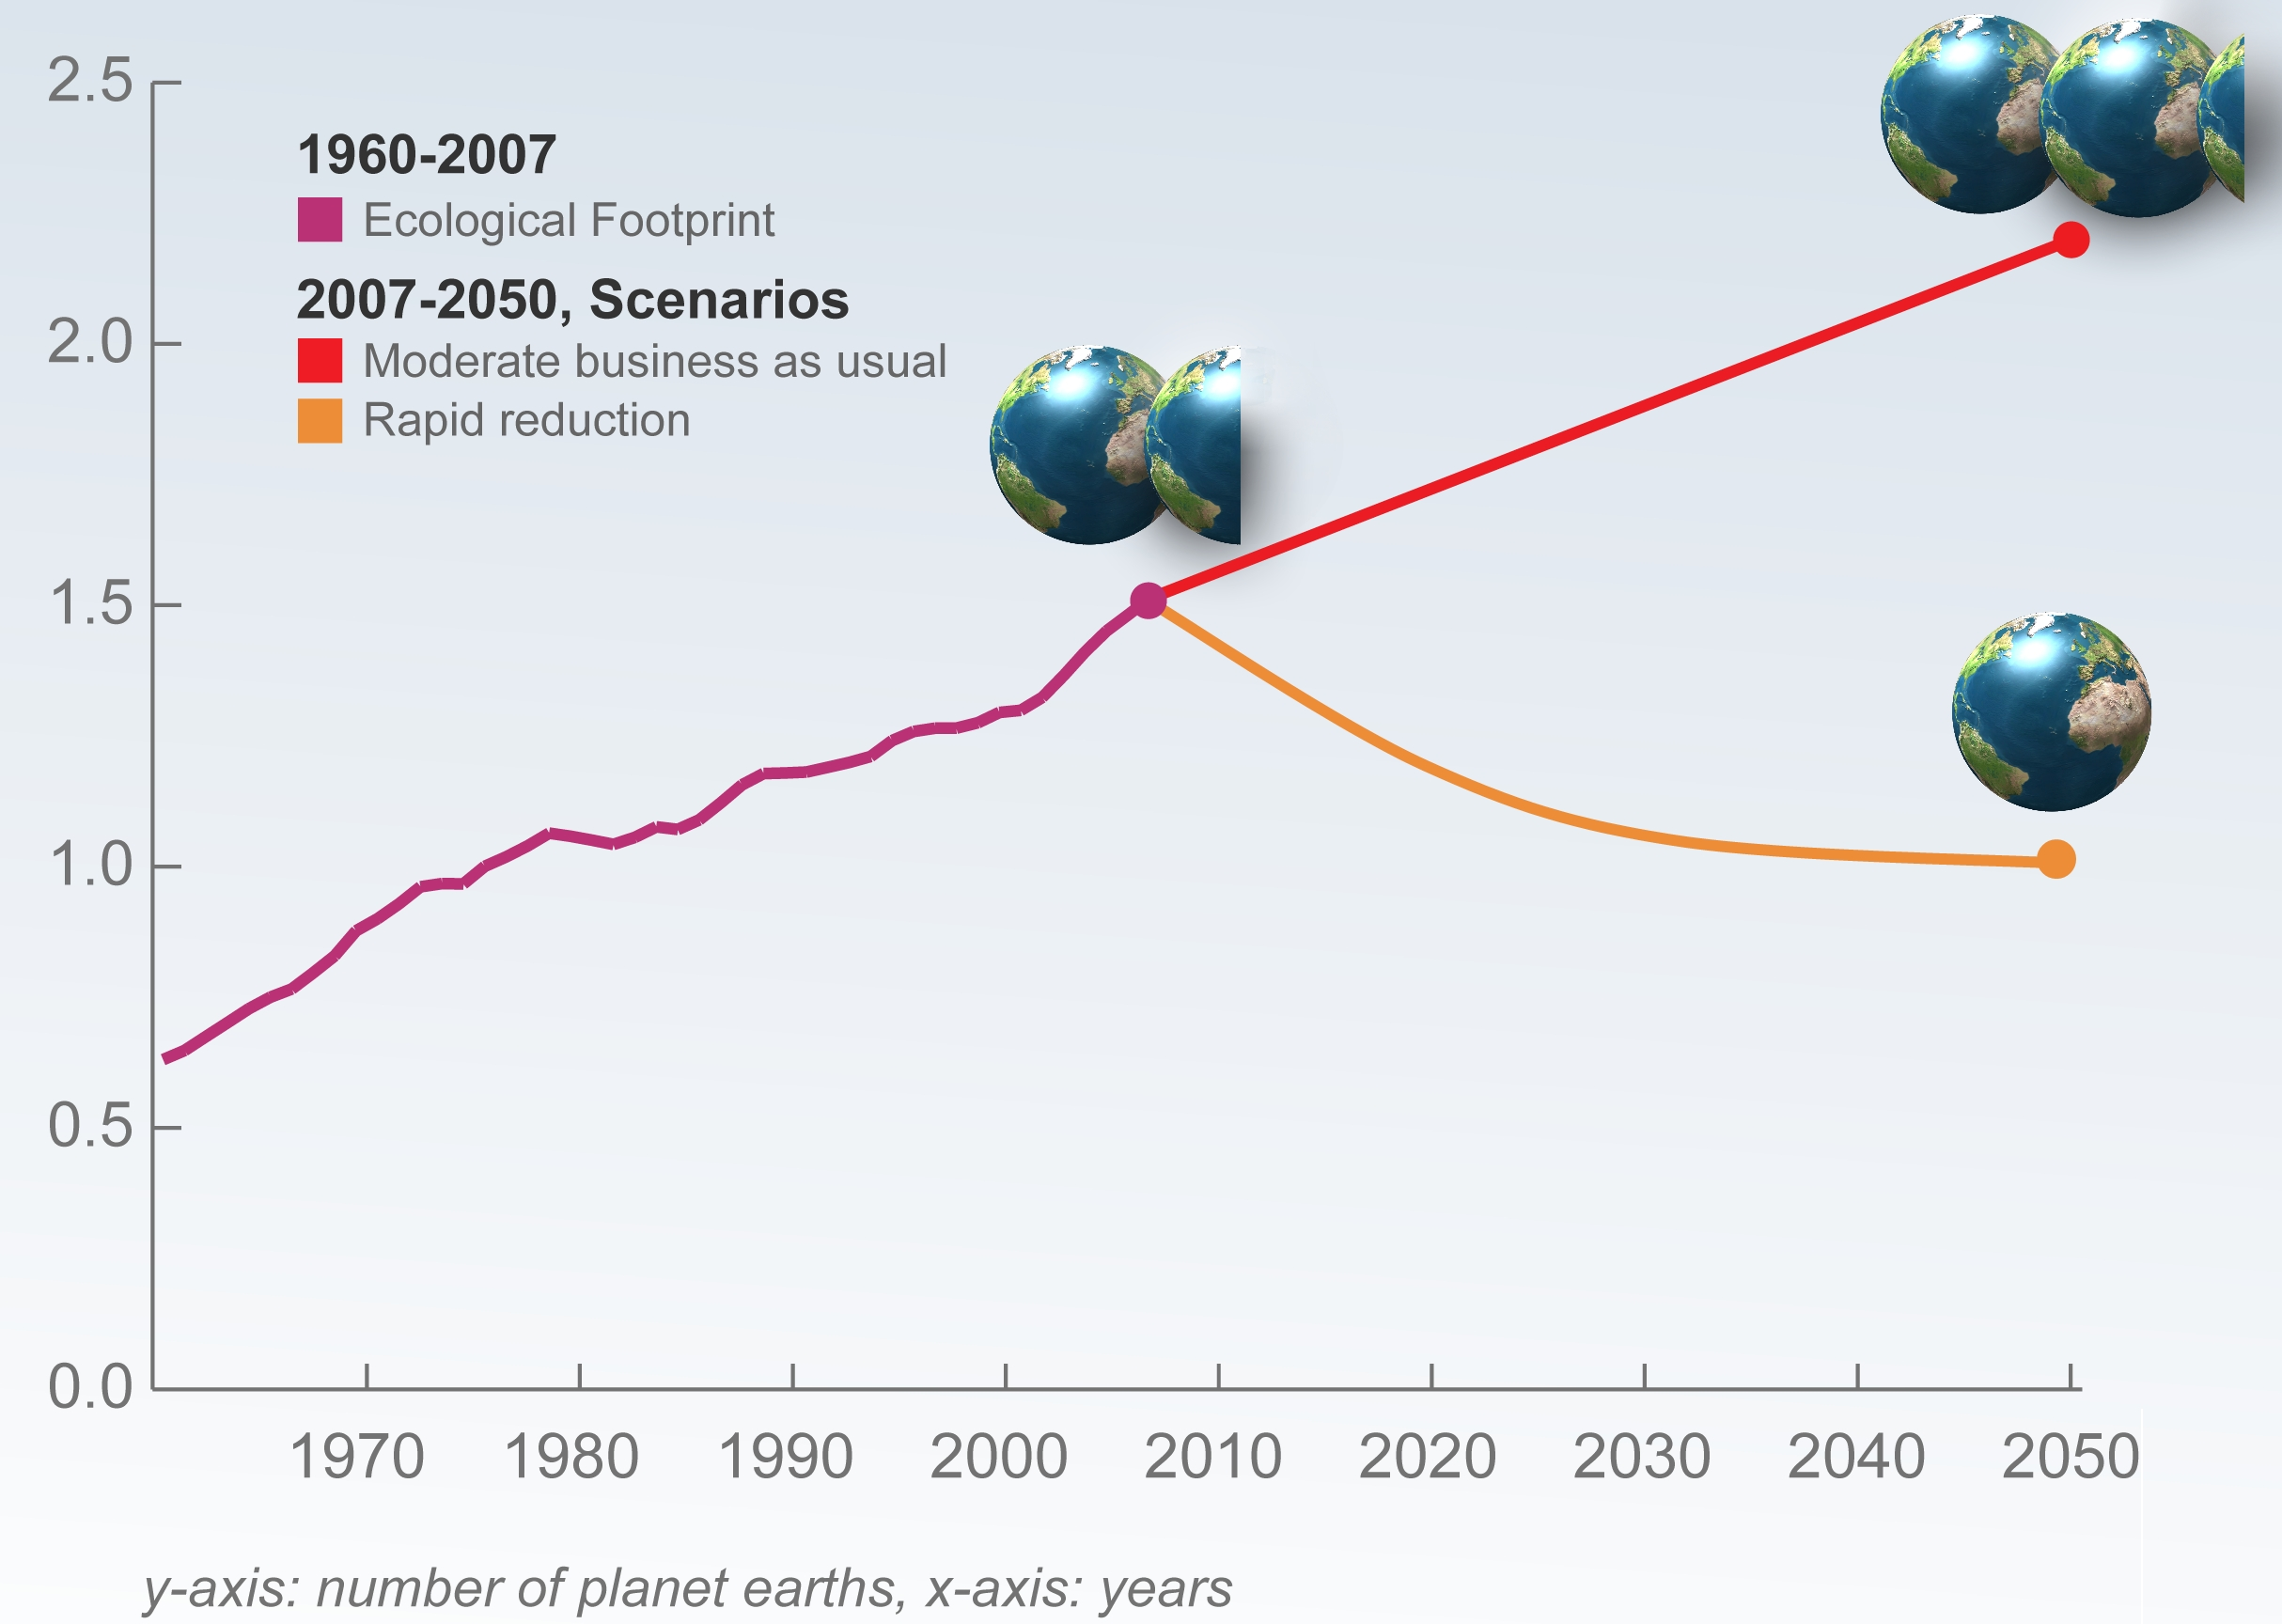 world footprint scenarios